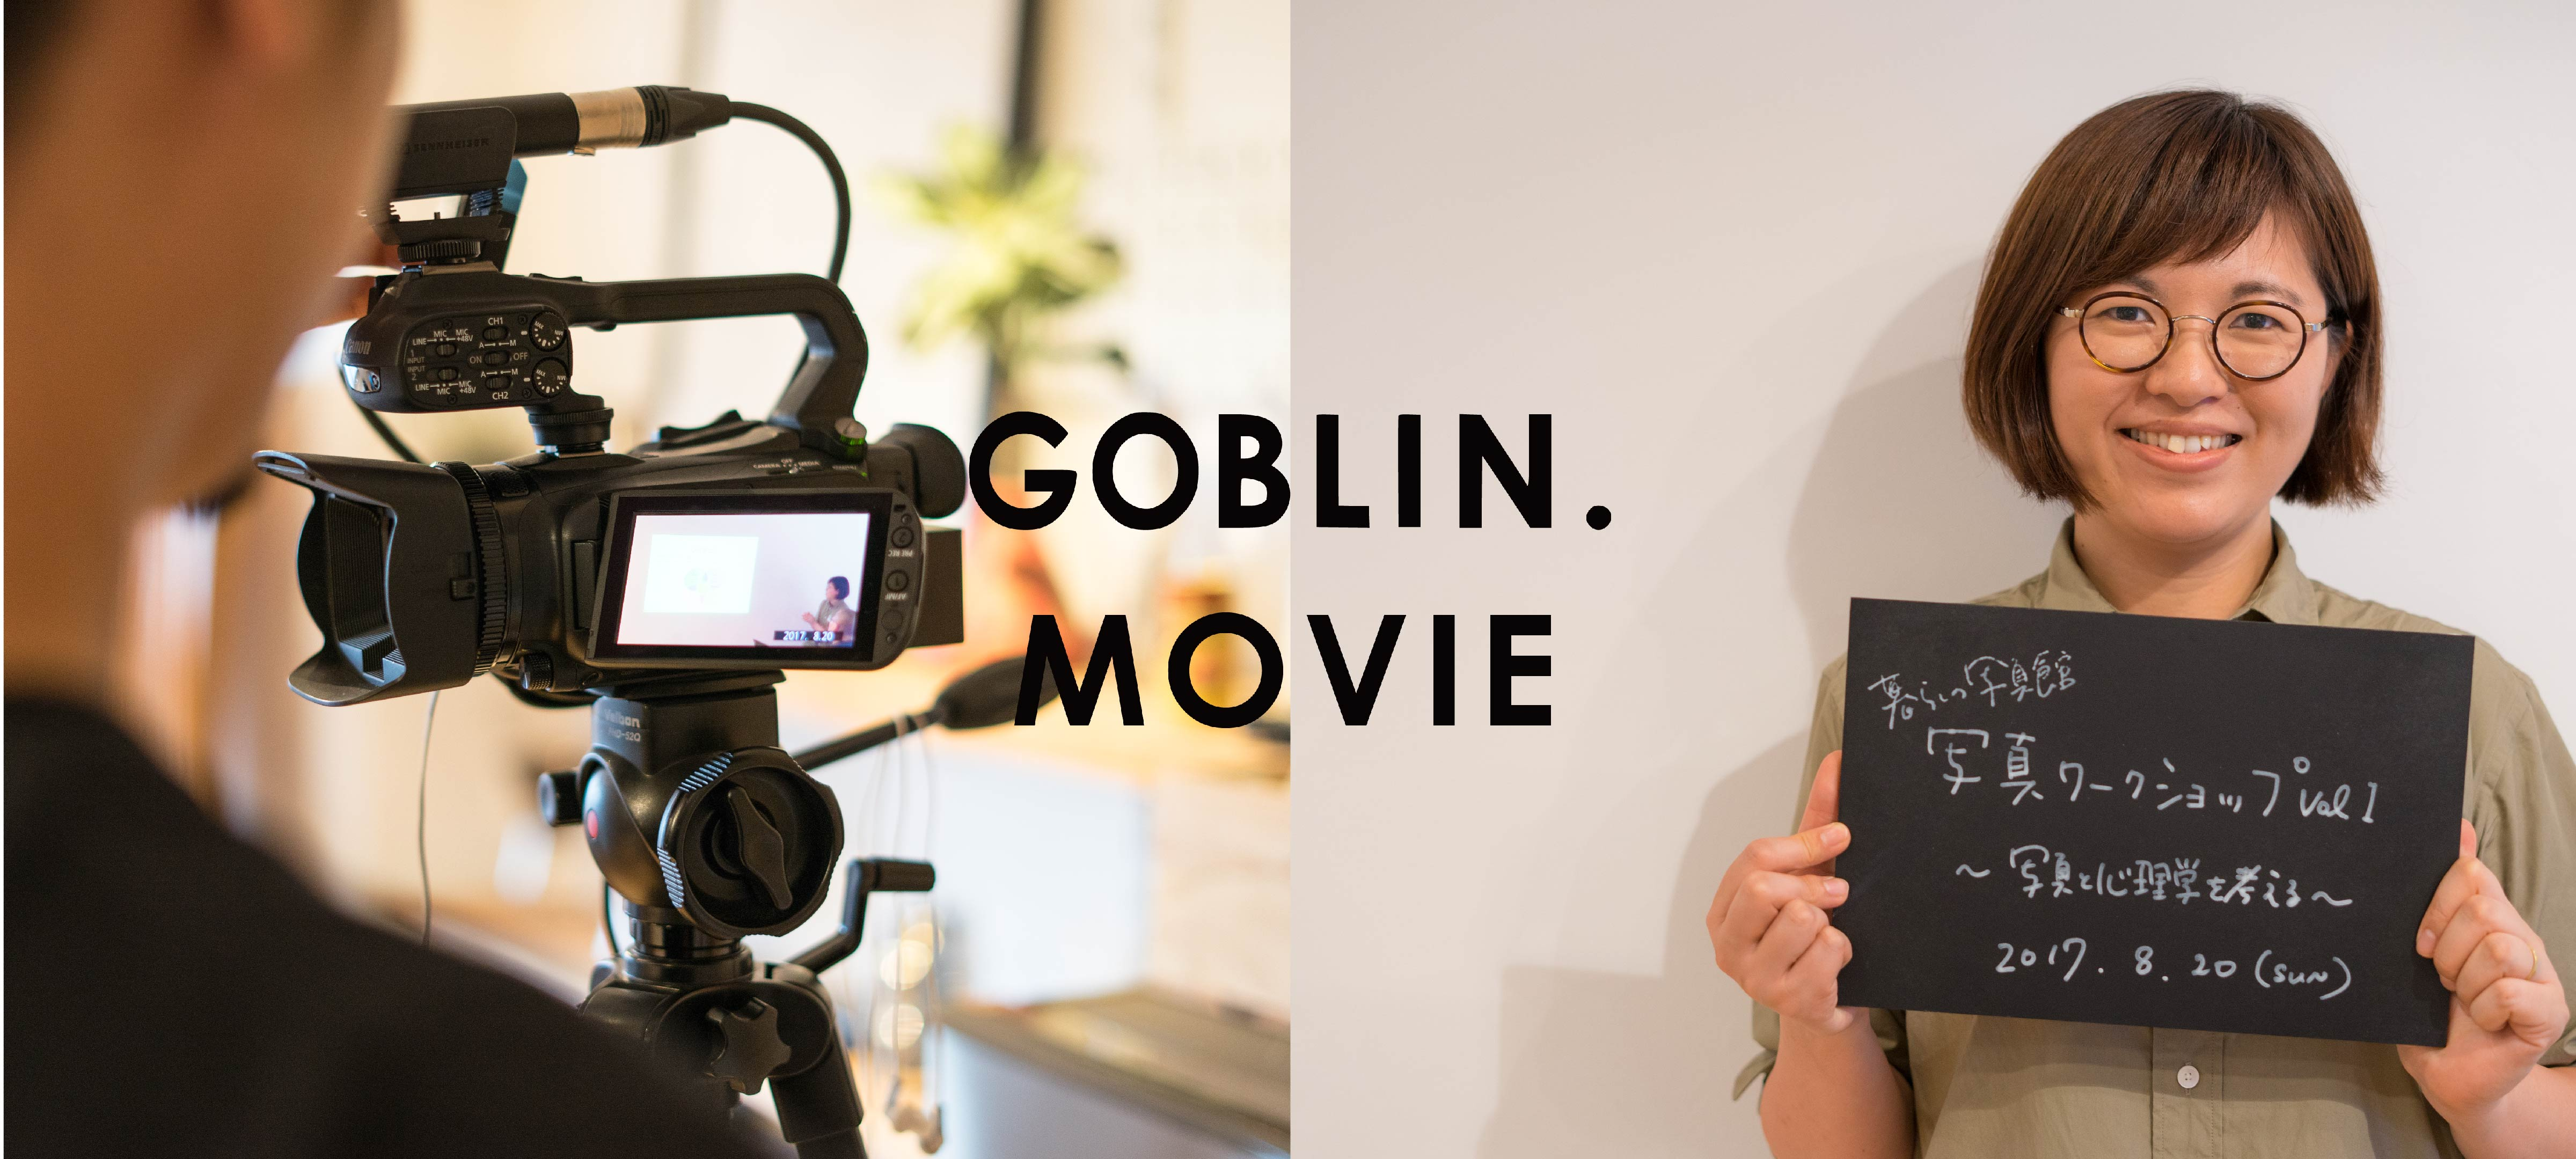 GOBLIN.MOVIE